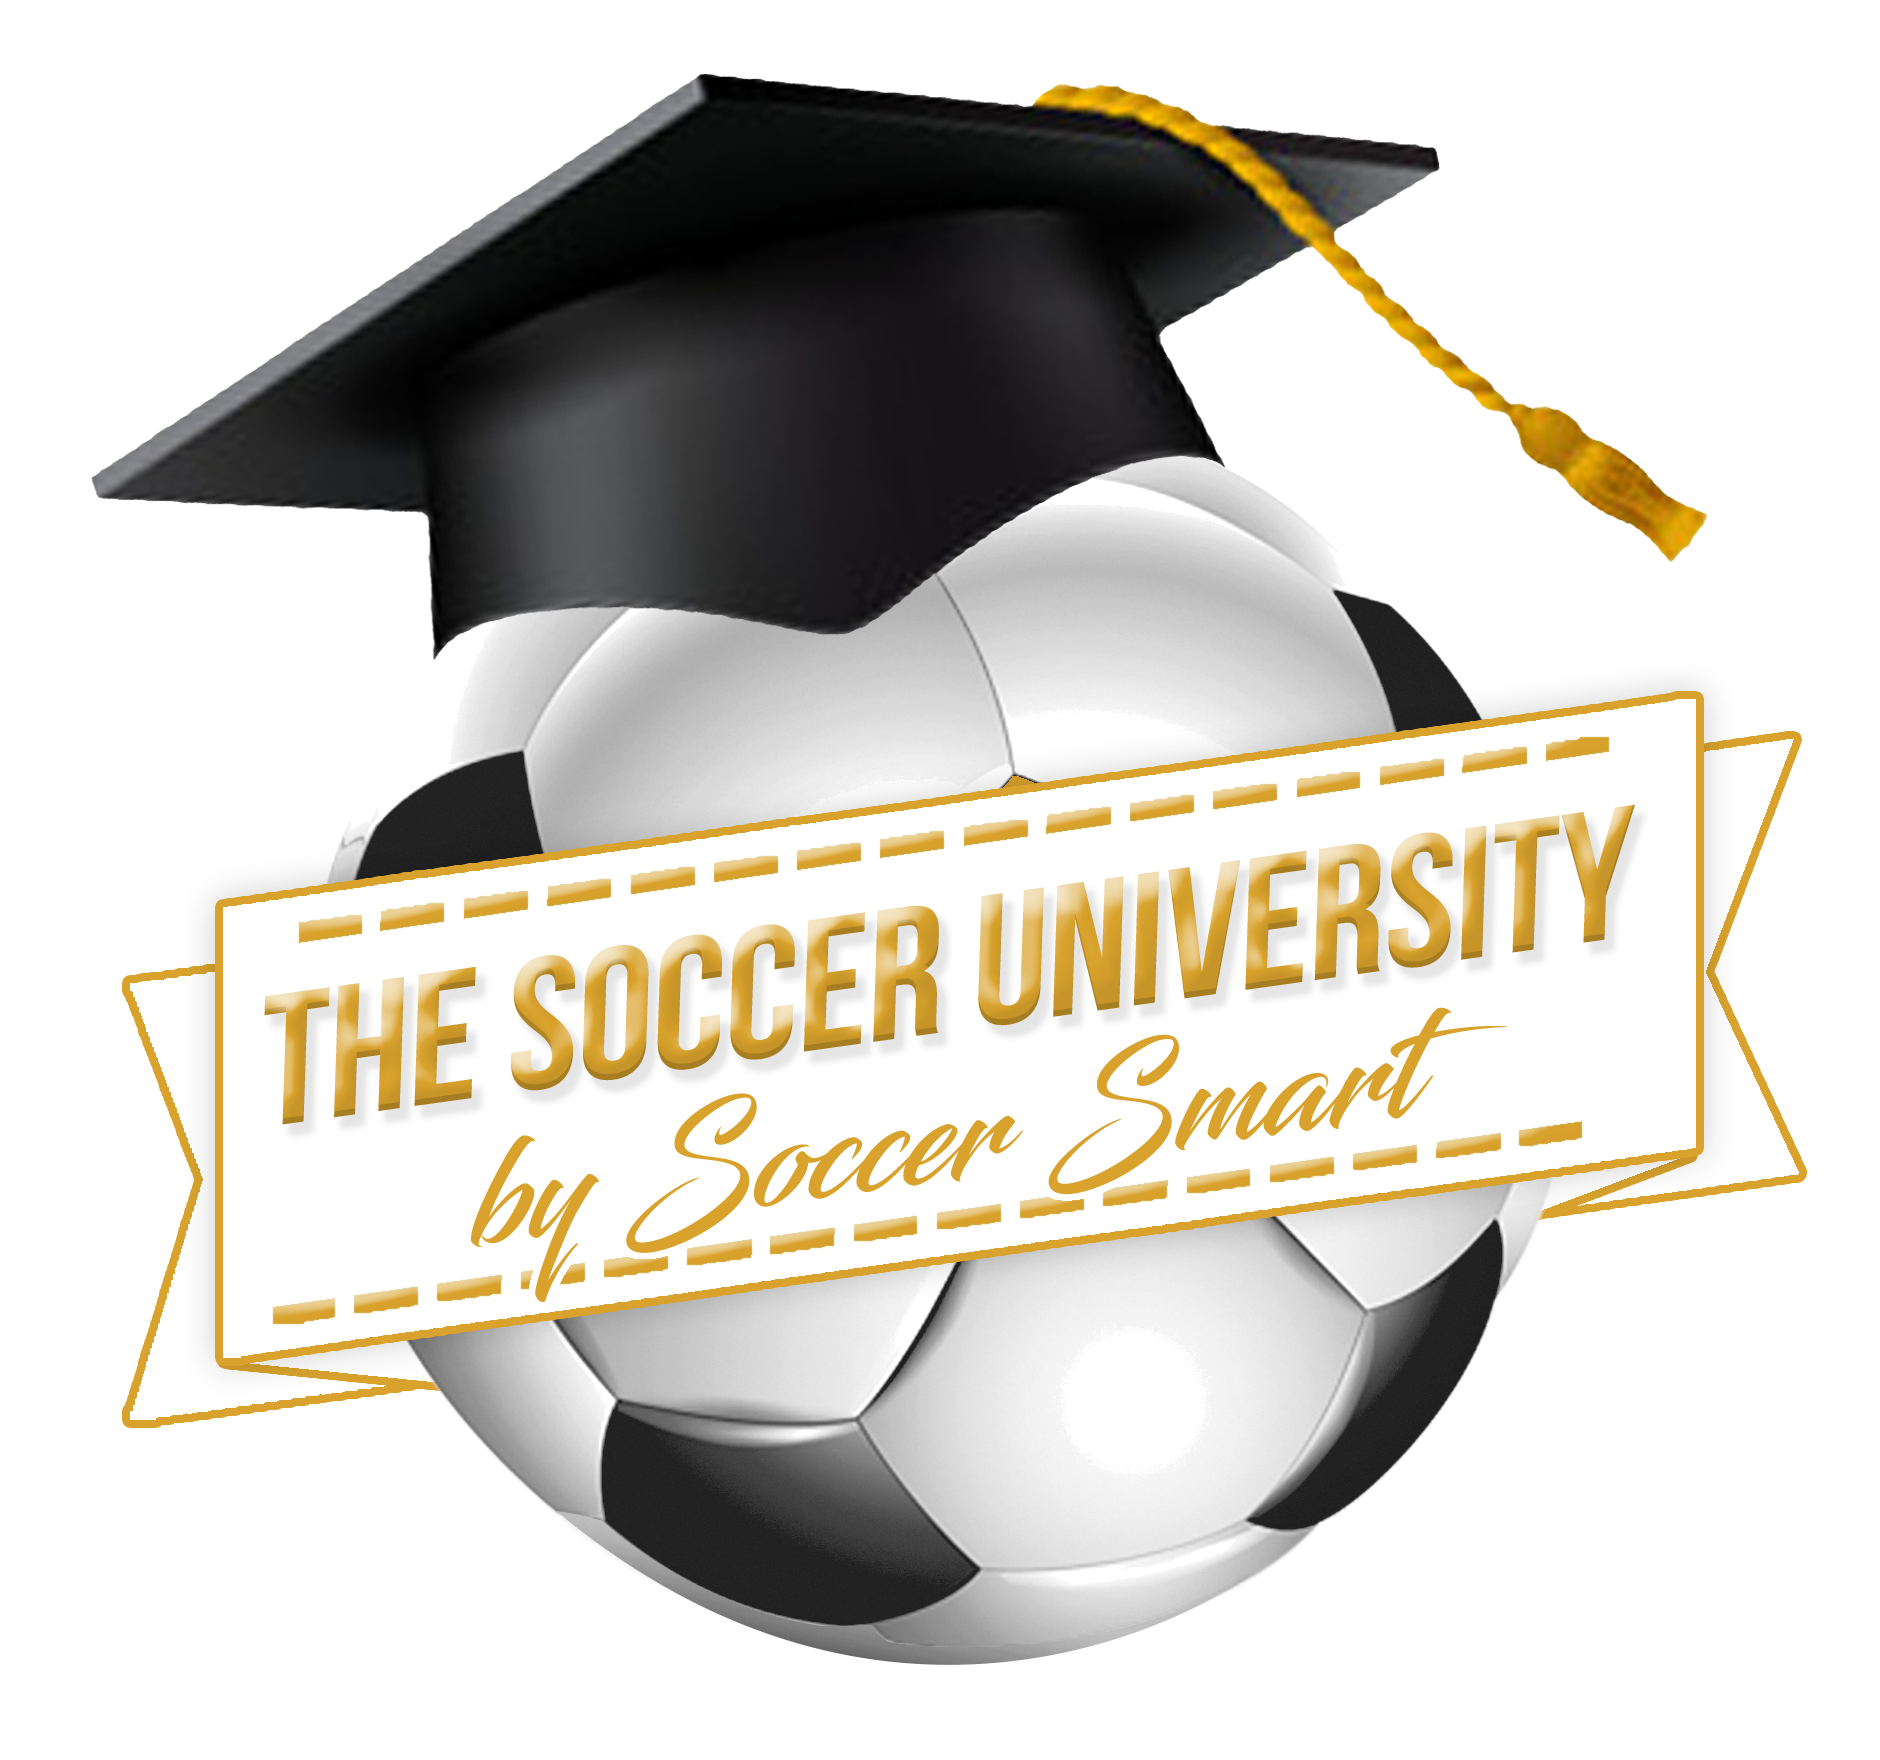 The_Soccer_University.png